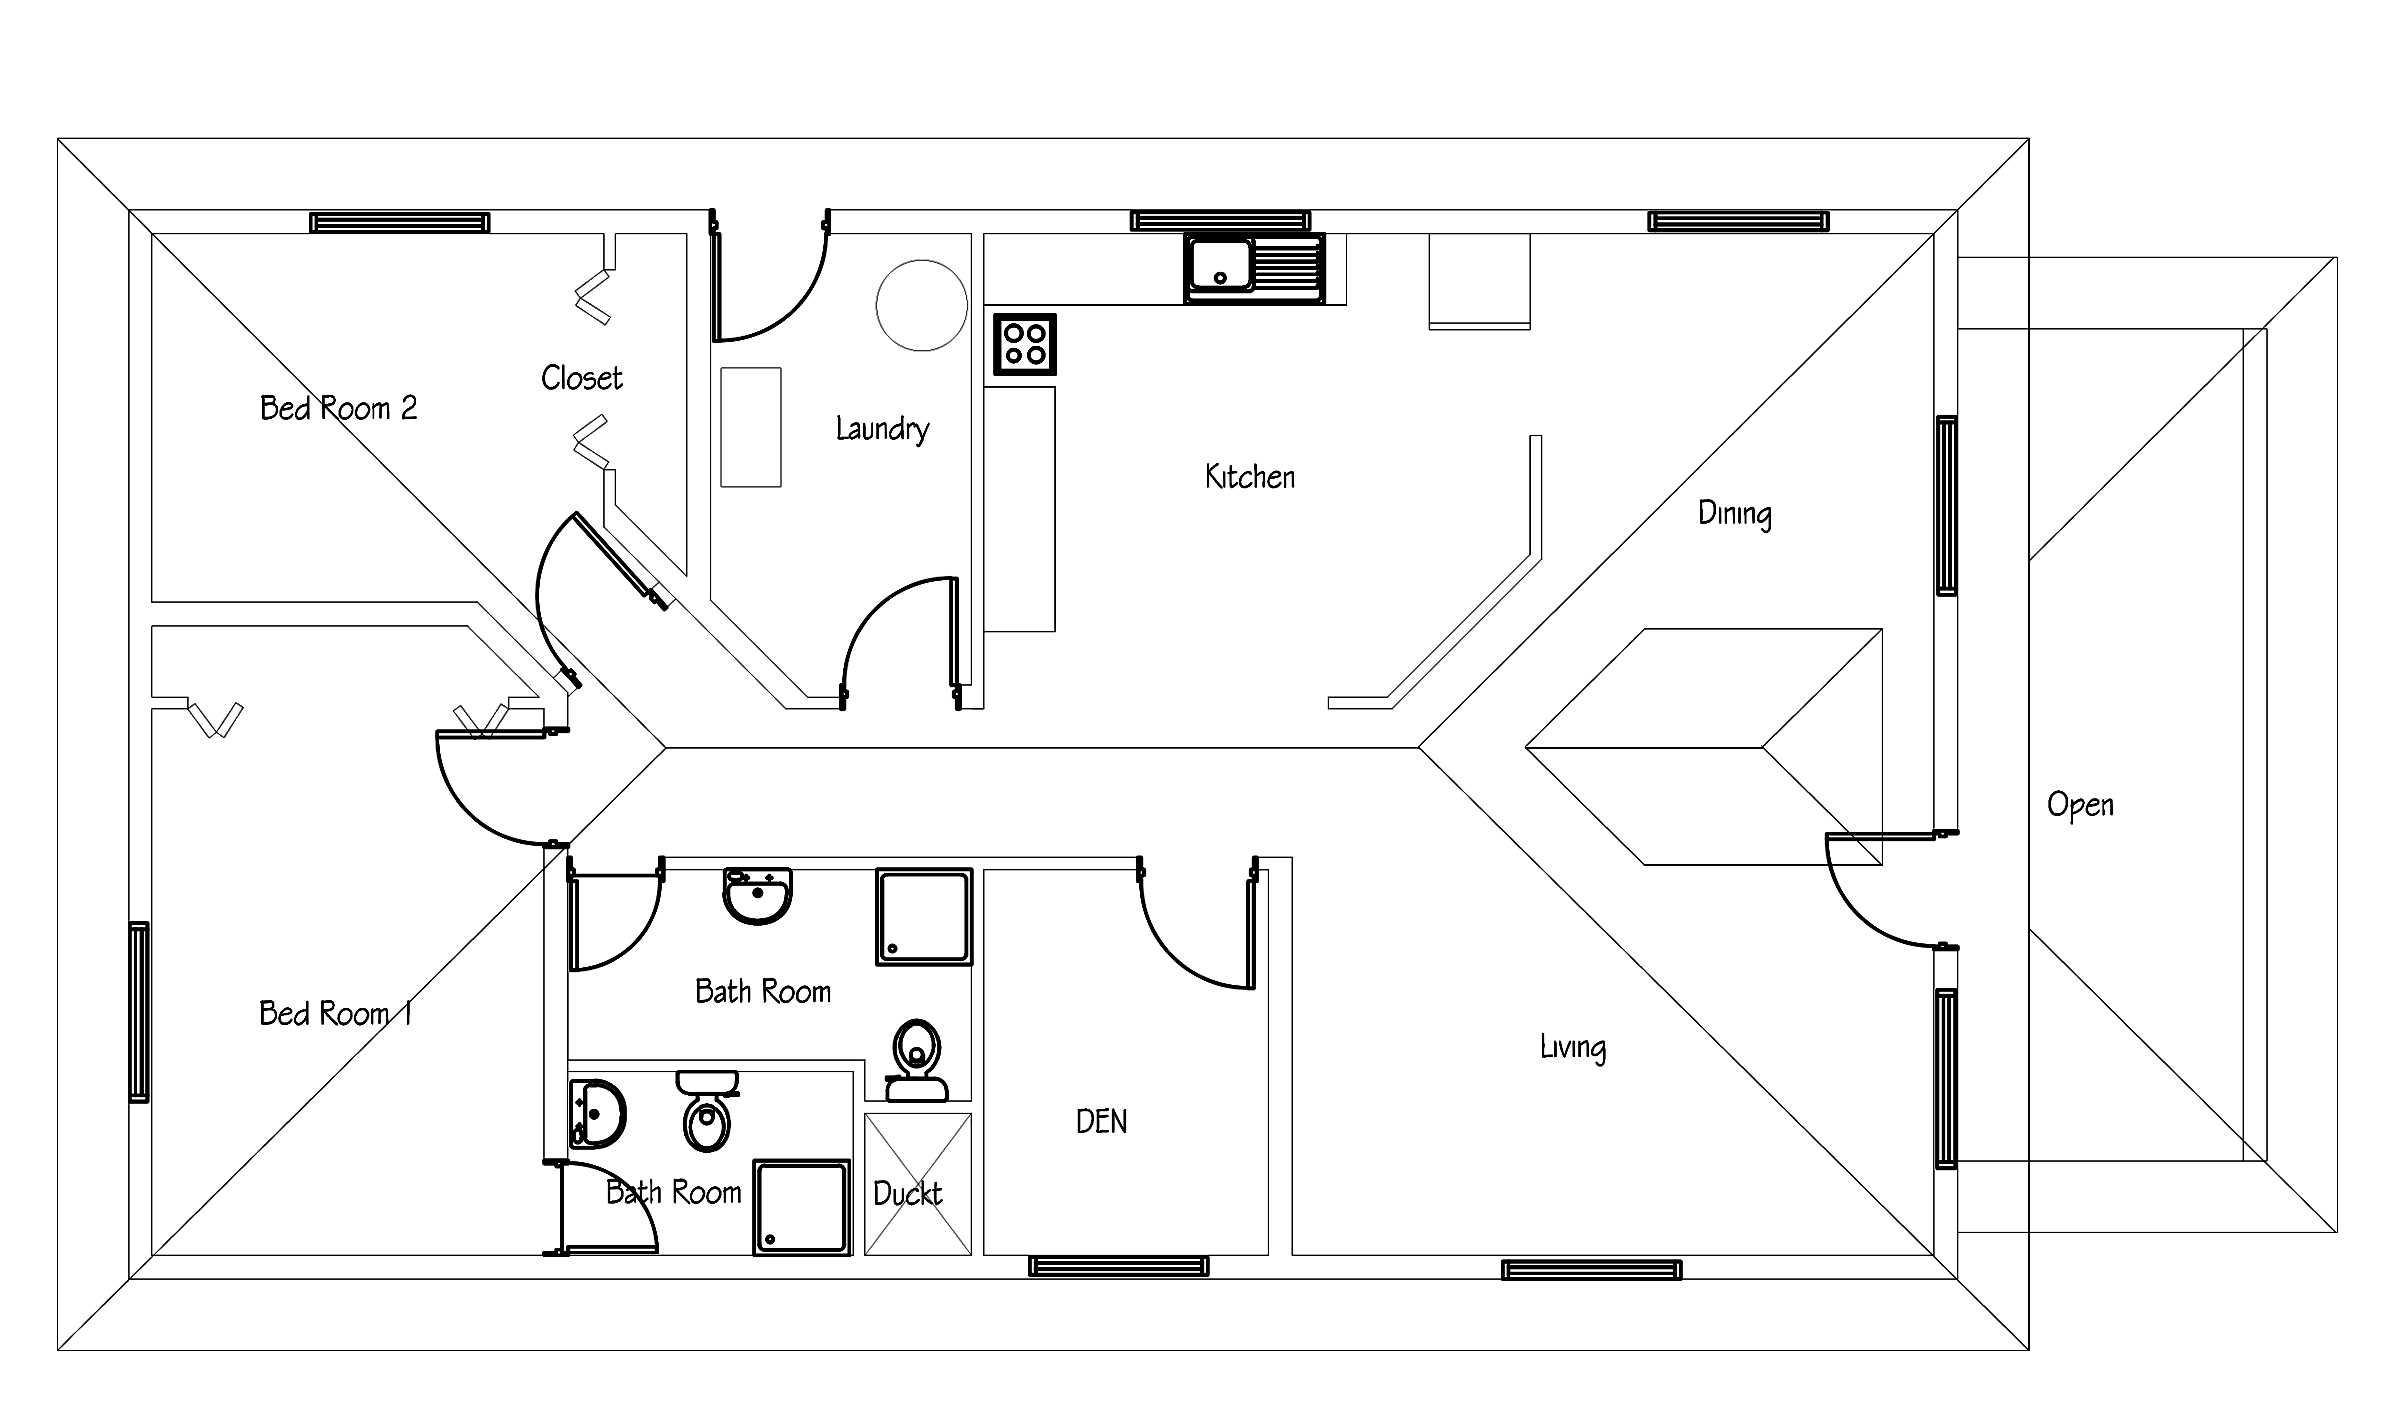 Small house plan free download with PDF and CAD file